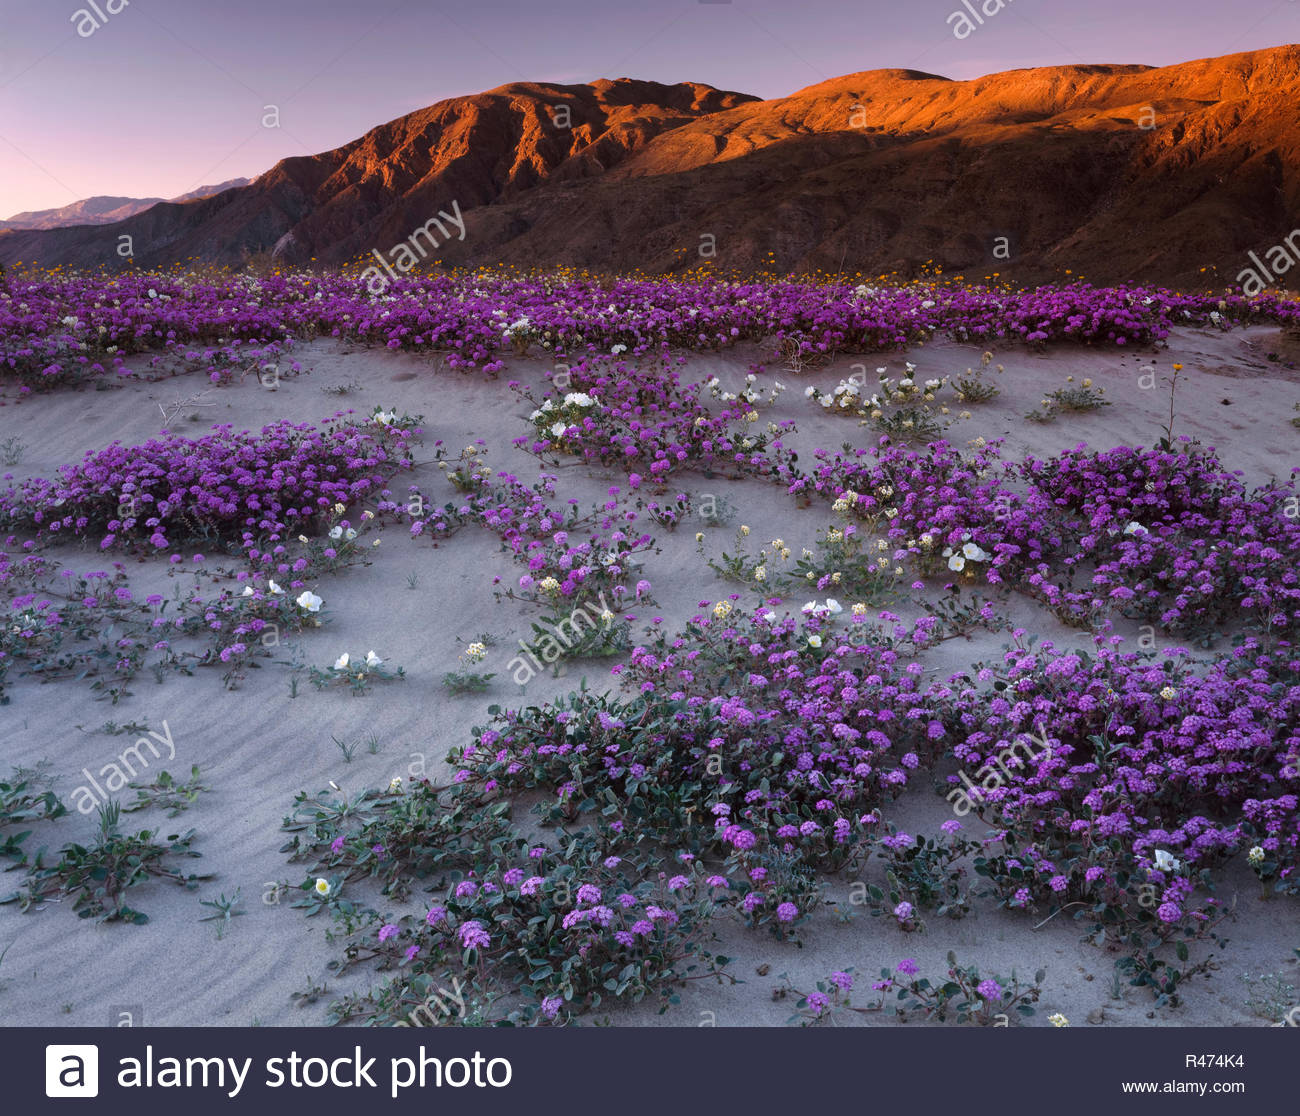 Superbloom of verbena and primrose below Coyote Mountain near Henderson Canyon Road at sunset, Anza Borrego Desert State Park, California, USA. Stock Photo